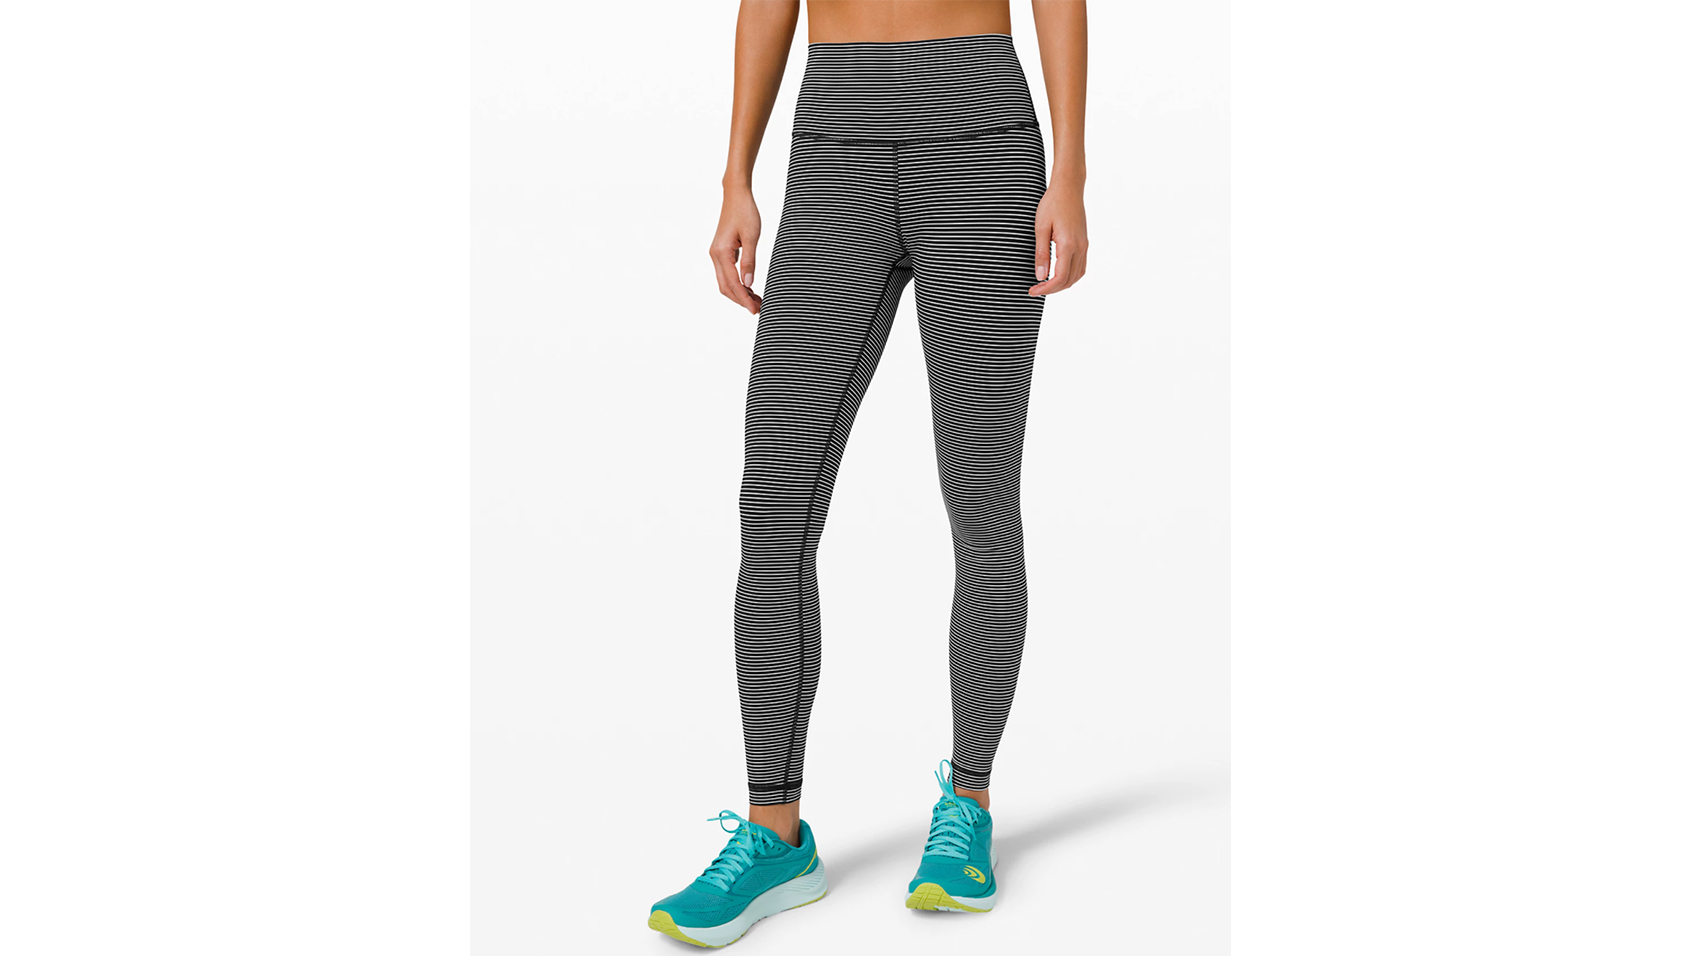 DEMOZU 25//28//31 High Waist Yoga Leggings Tummy Control Buttery Soft Workout Running Athletic Pants with Pockets